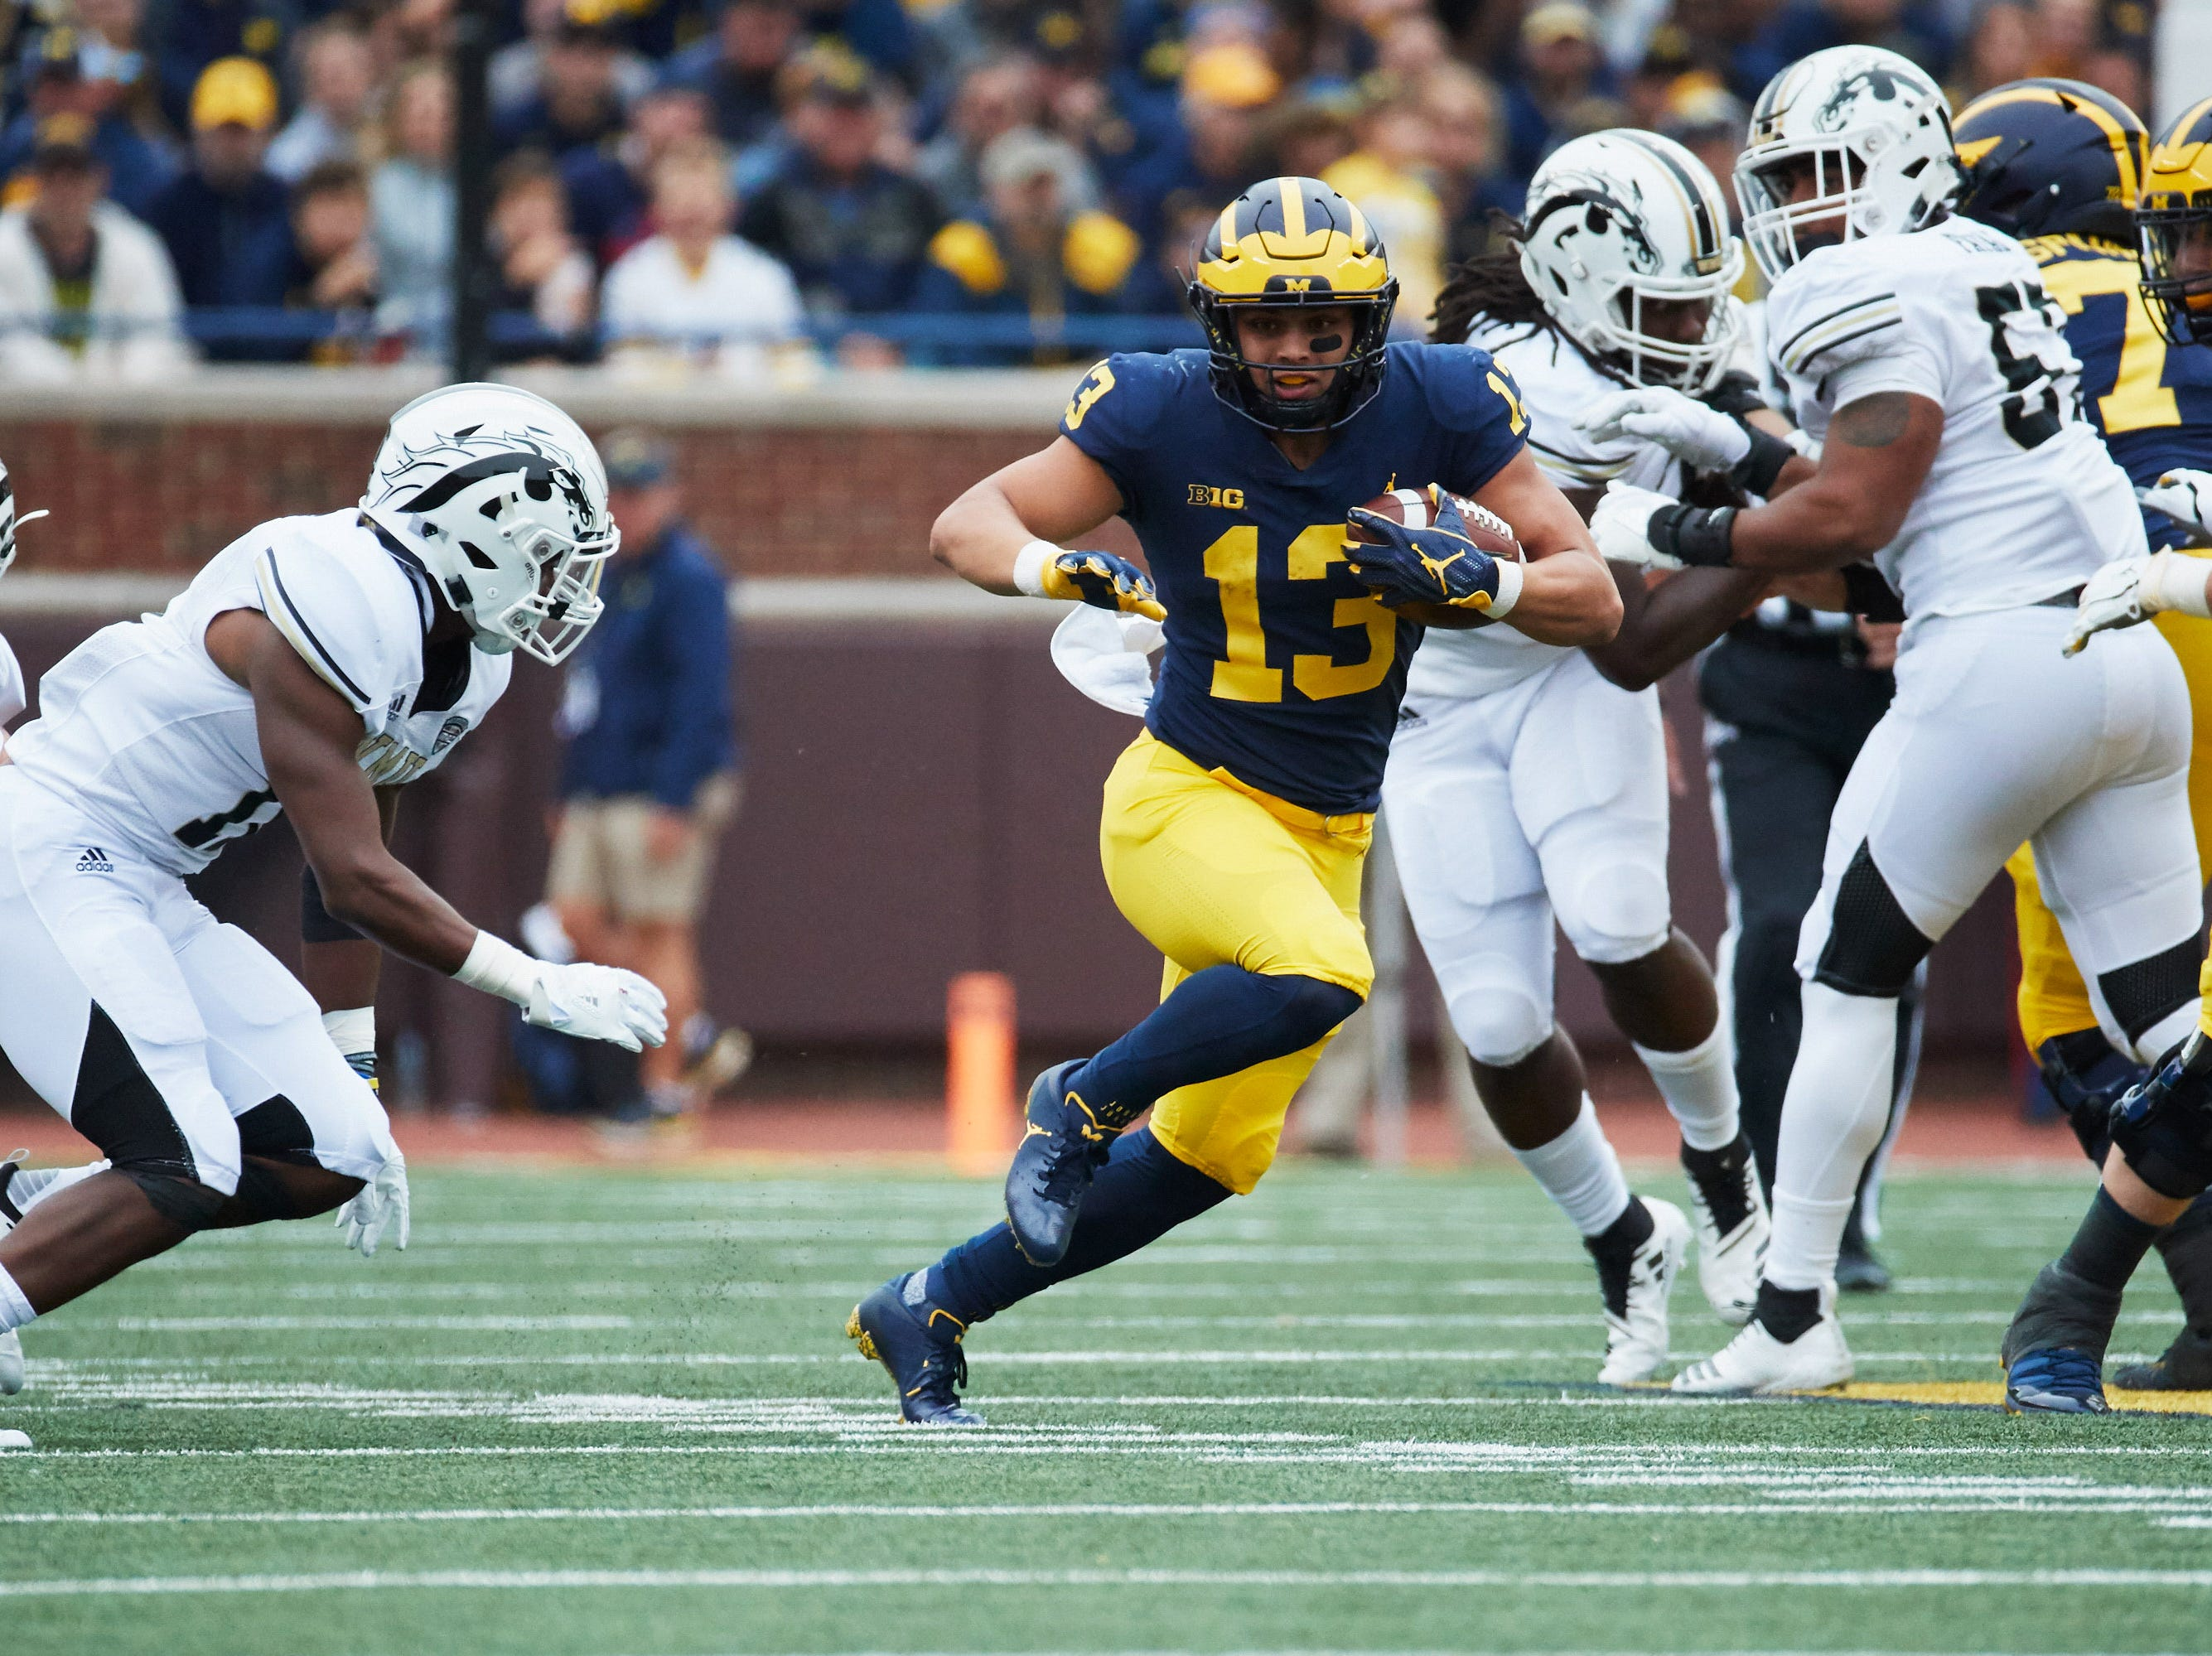 Sep 8, 2018; Ann Arbor, MI, USA; Michigan Wolverines running back Tru Wilson (13) runs the ball against the Western Michigan Broncos at Michigan Stadium. Mandatory Credit: Rick Osentoski-USA TODAY Sports